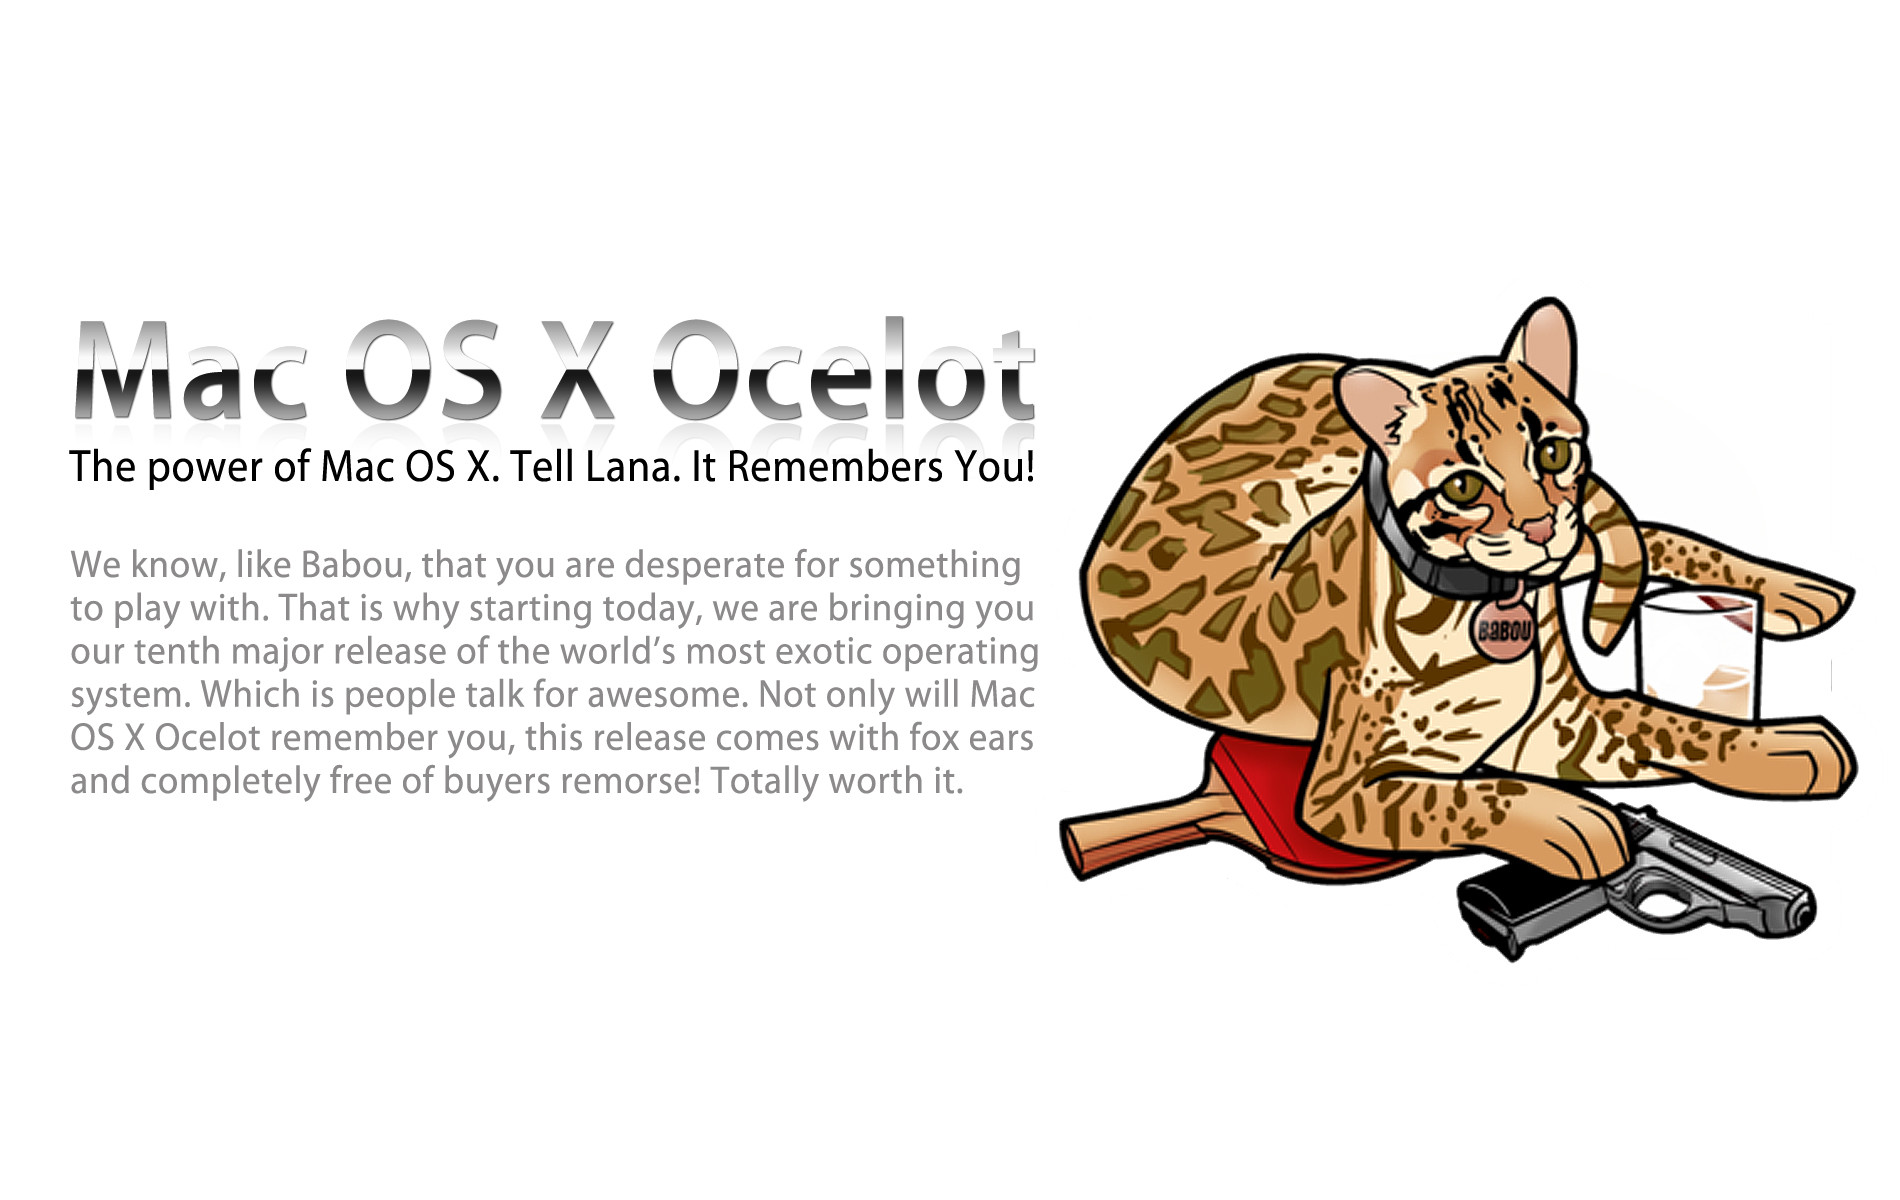 Mac OS X Ocelot – What I'm Hoping For During The WWDC Announcement